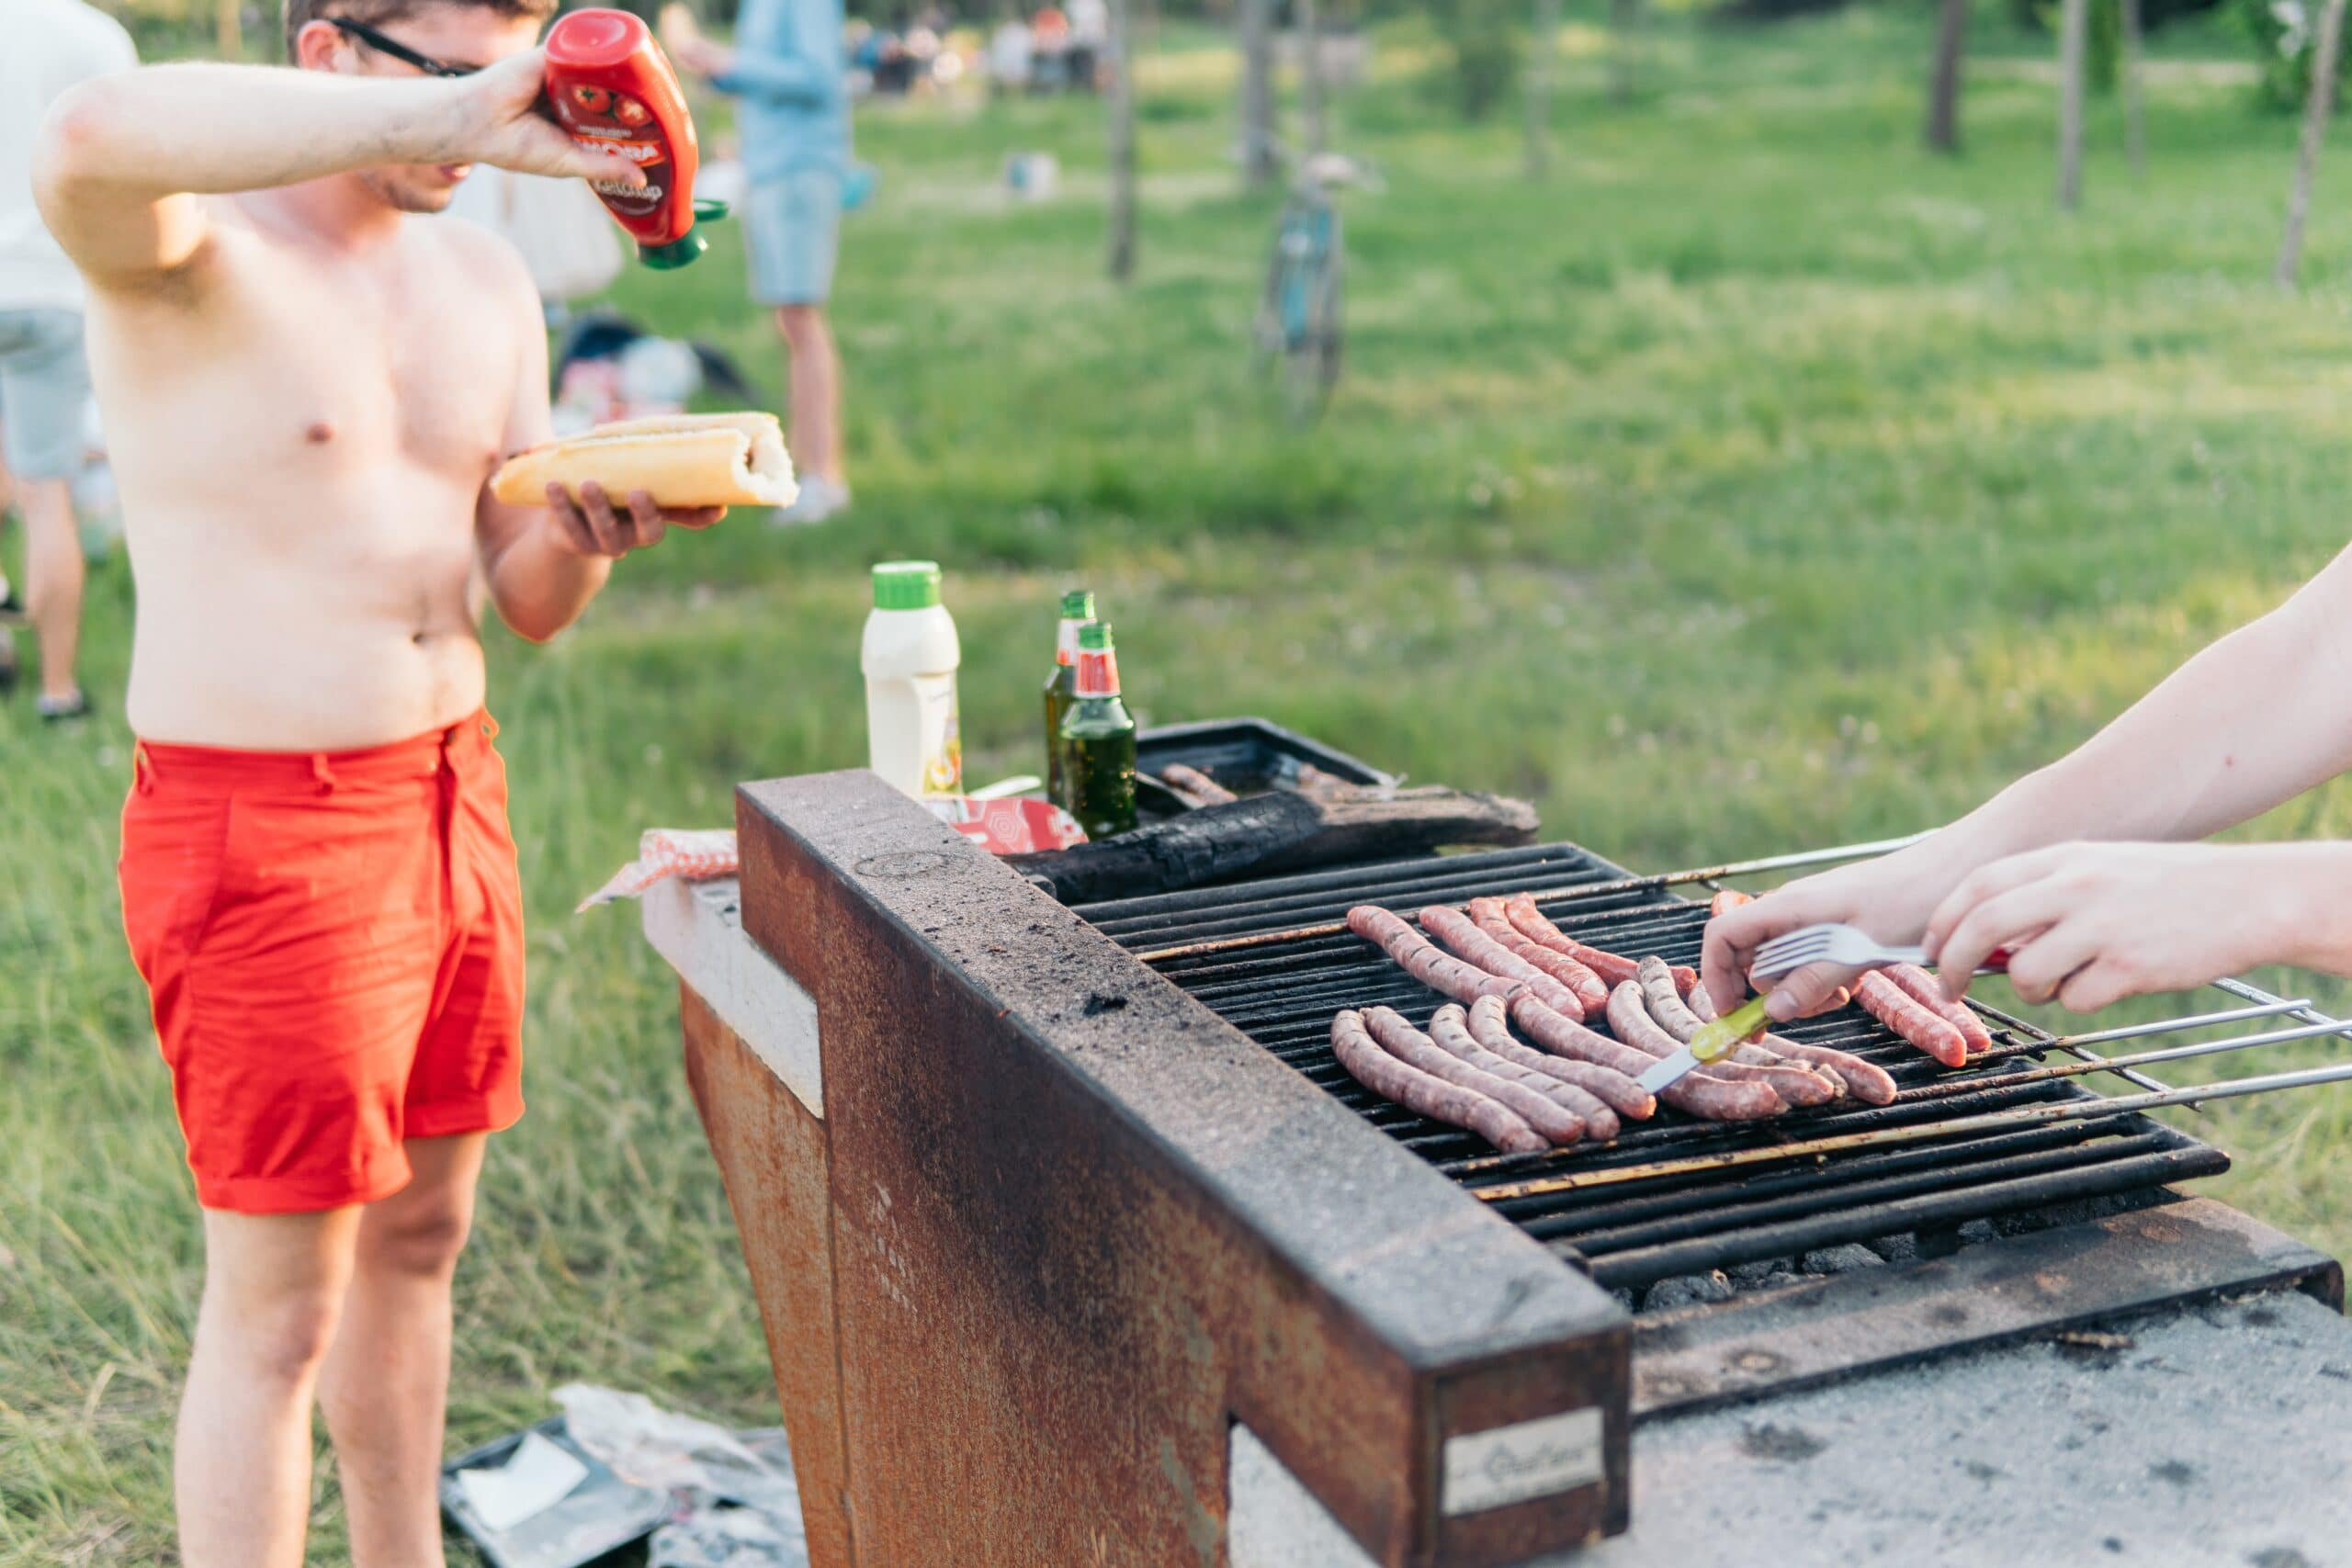 man wearing red shorts standing at grill putting ketchup on hotdog